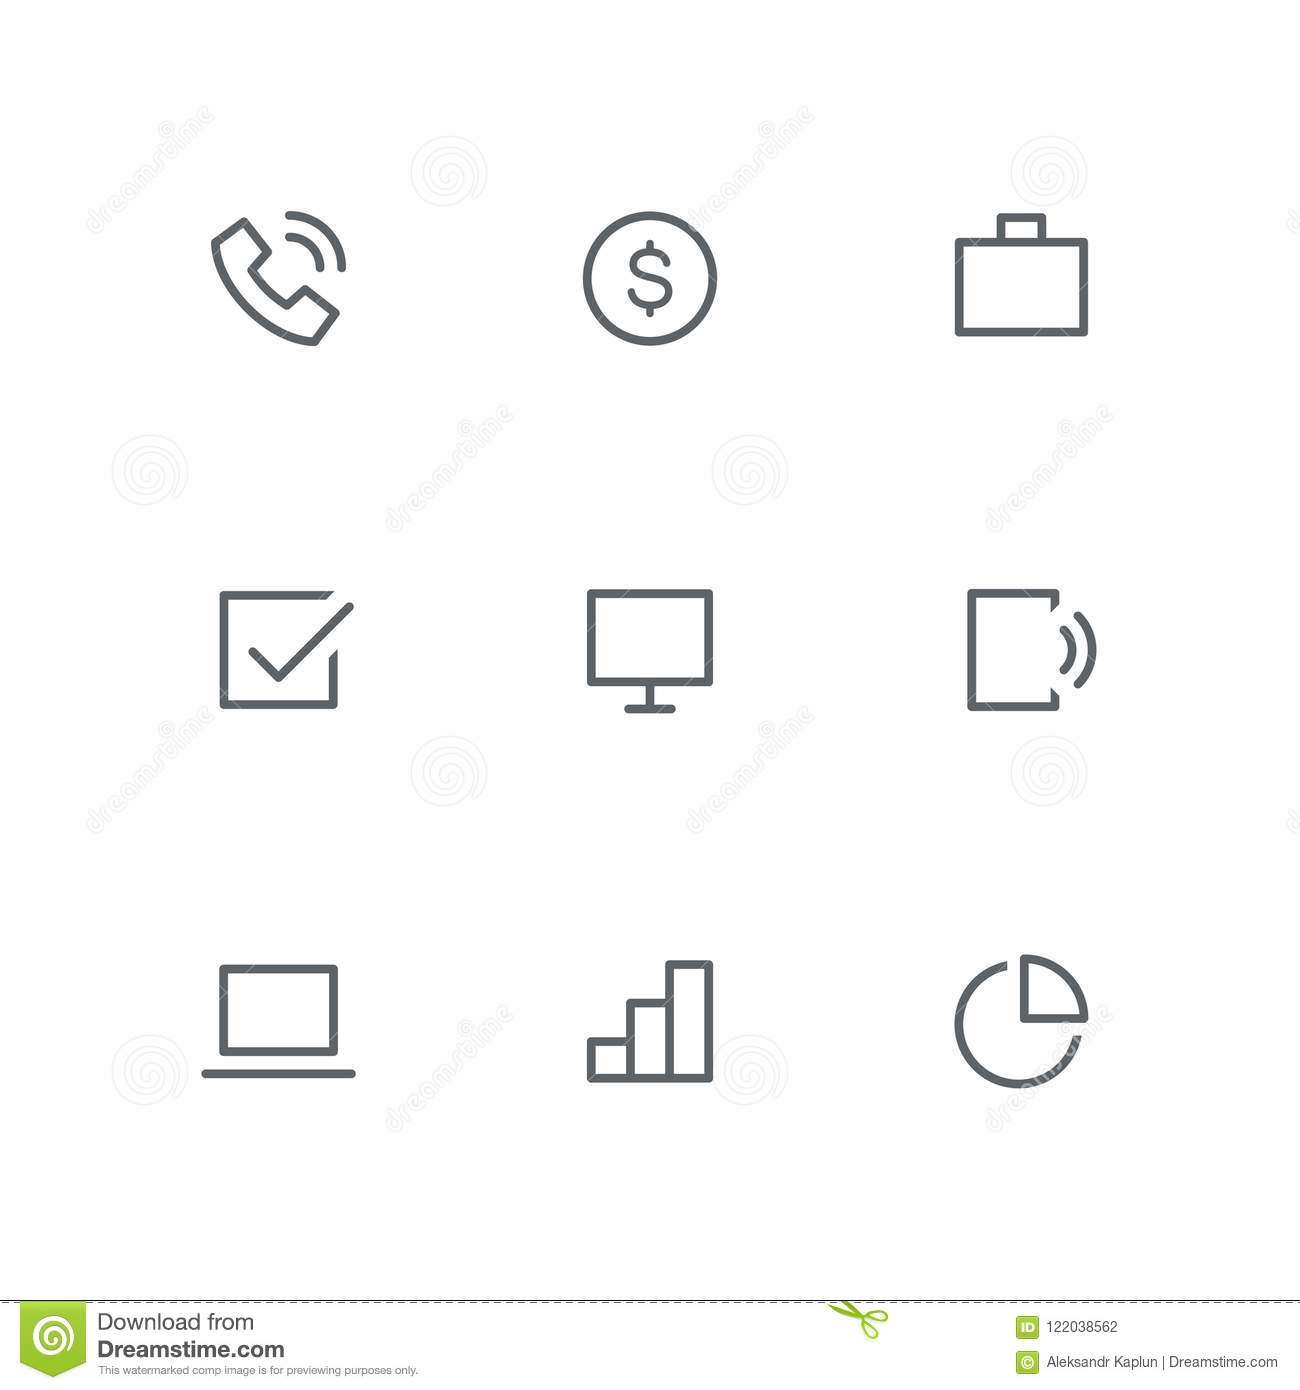 hight resolution of basic outline icon set telephone dollar coin briefcase check mark computer screen mobile phone laptop graph and diagram symbols